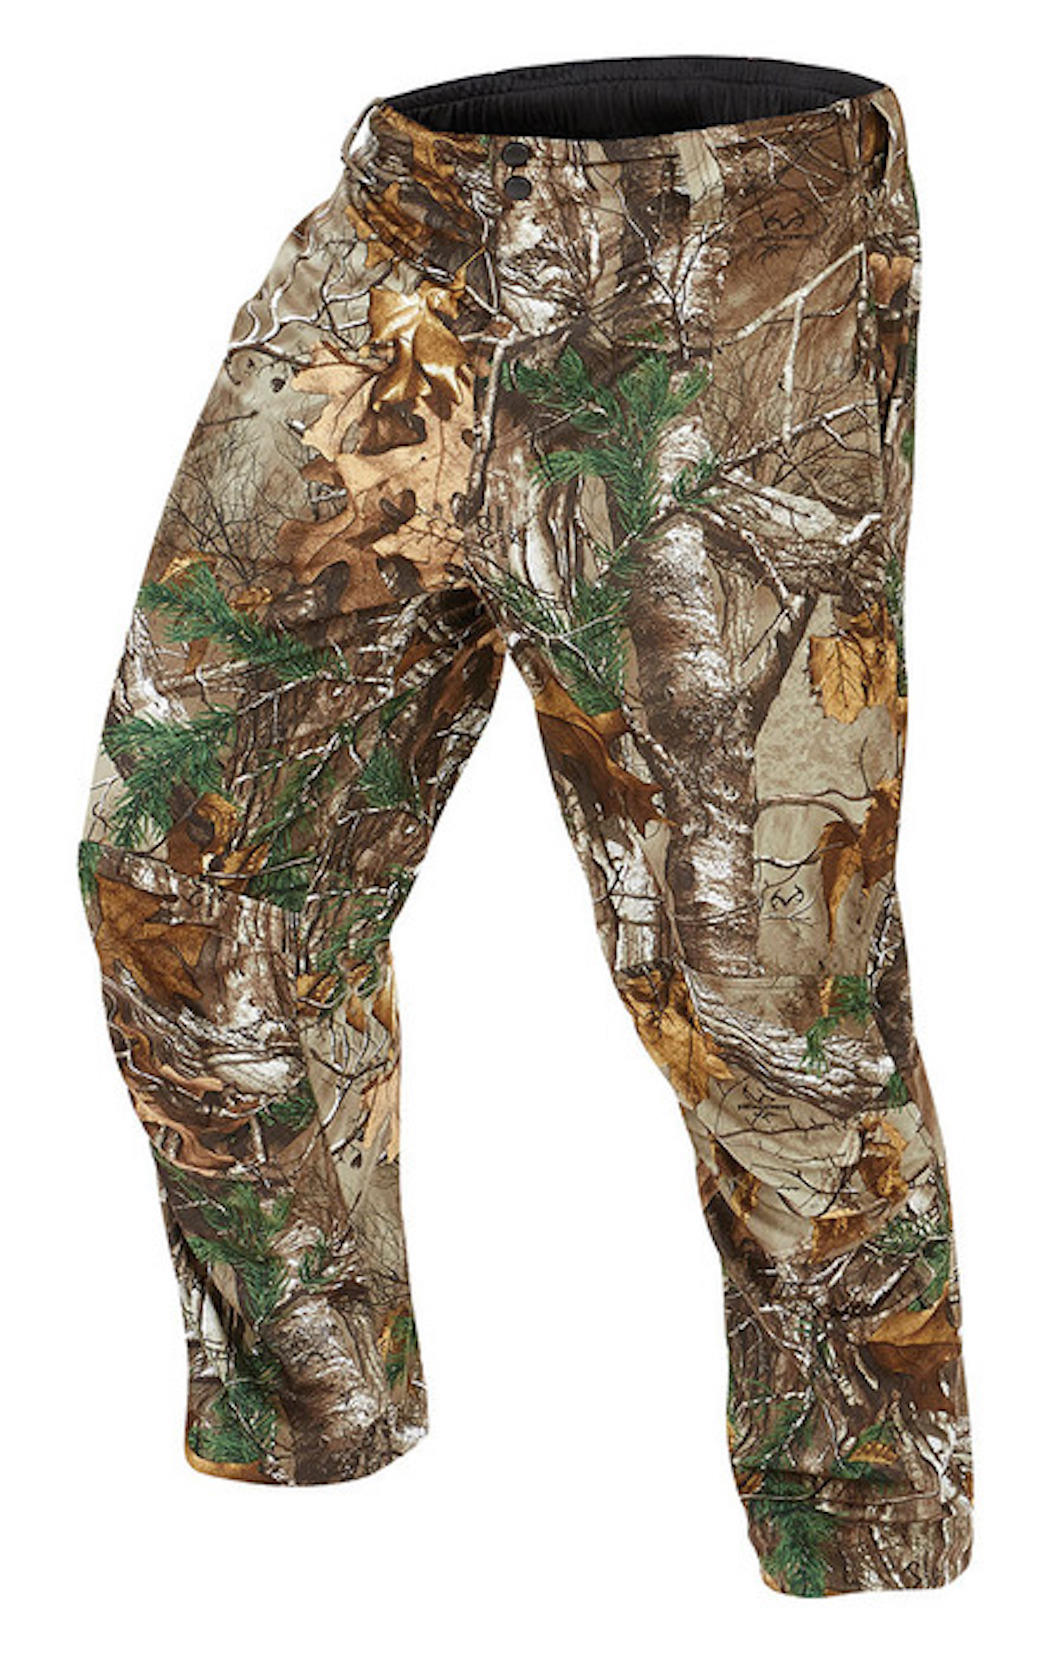 Mid-Weight Pant in Realtree Xtra